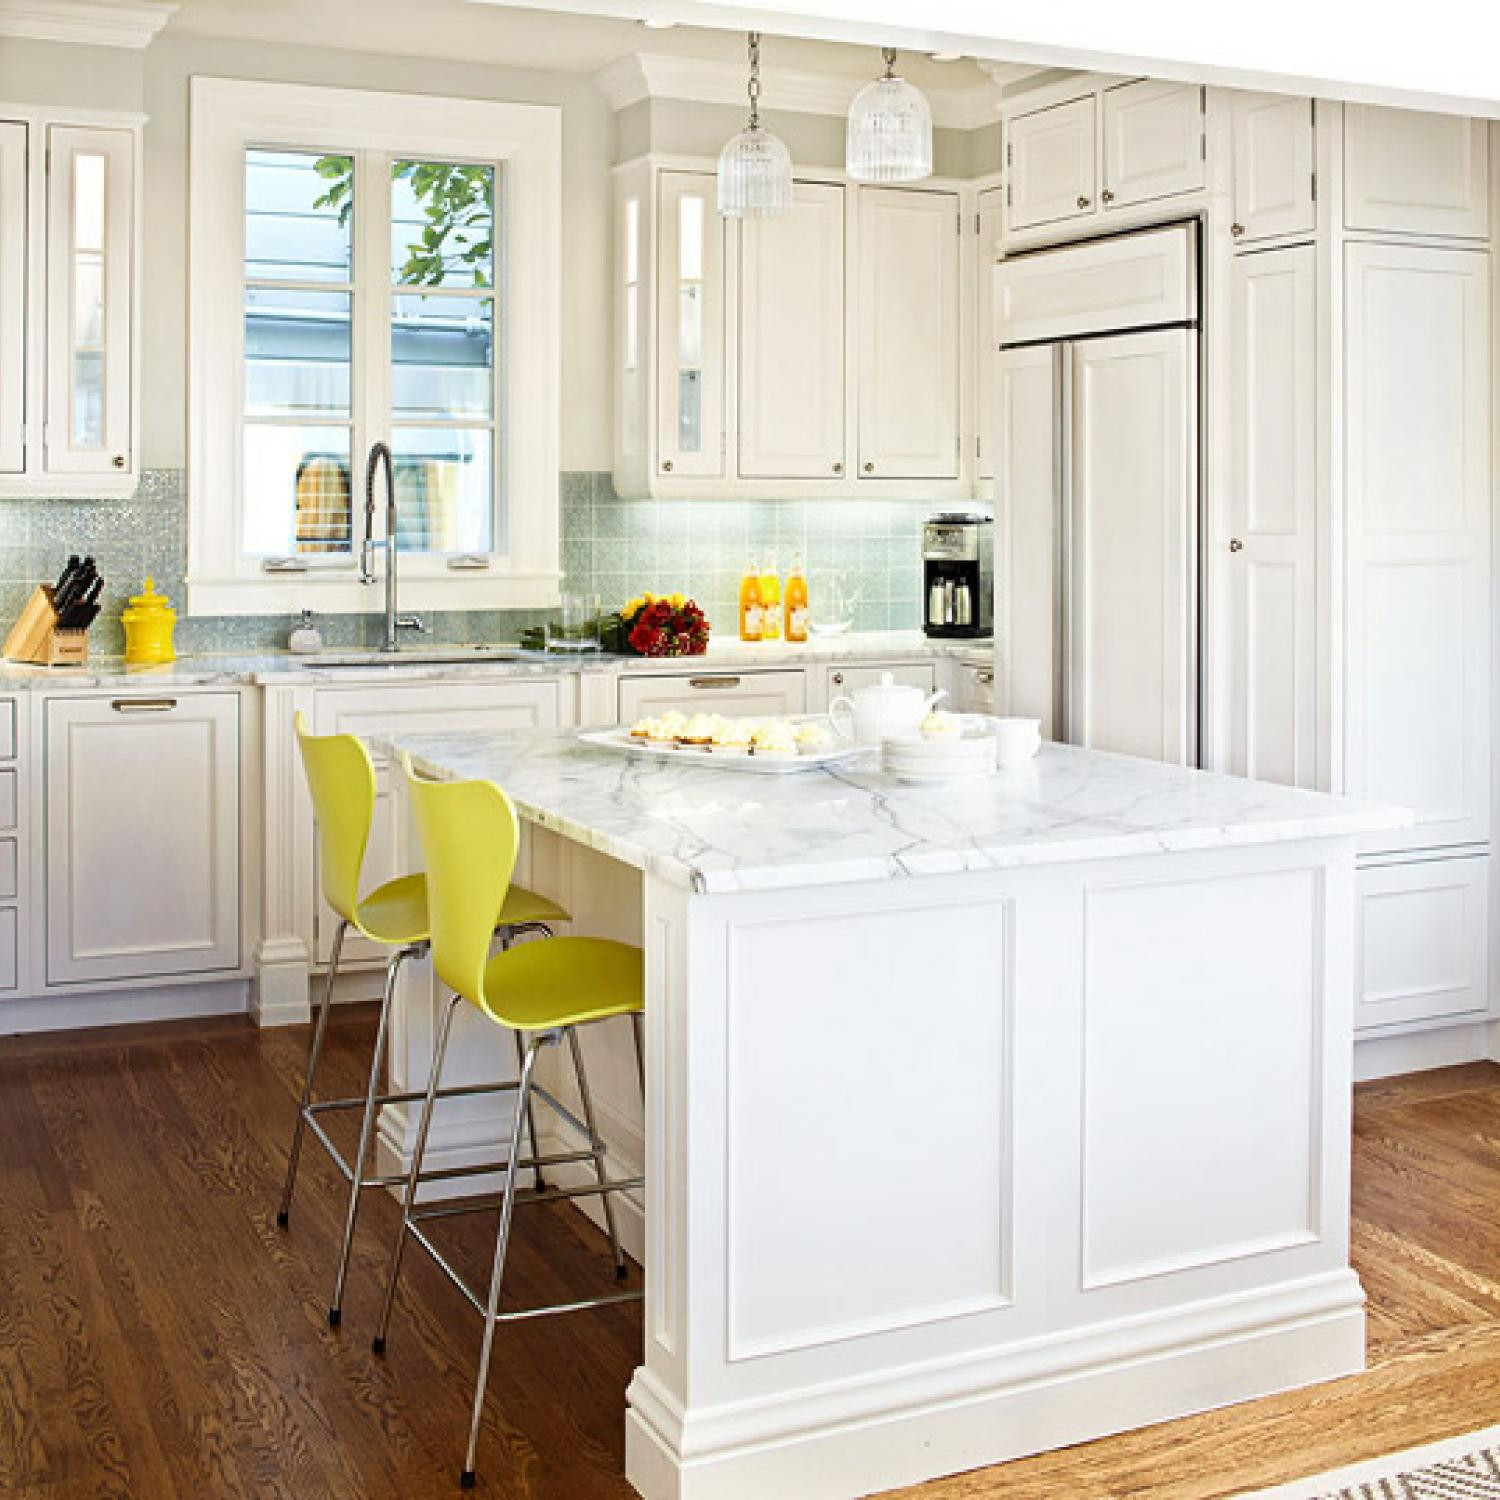 Best ideas about White Kitchen Ideas . Save or Pin Design Ideas for White Kitchens Now.